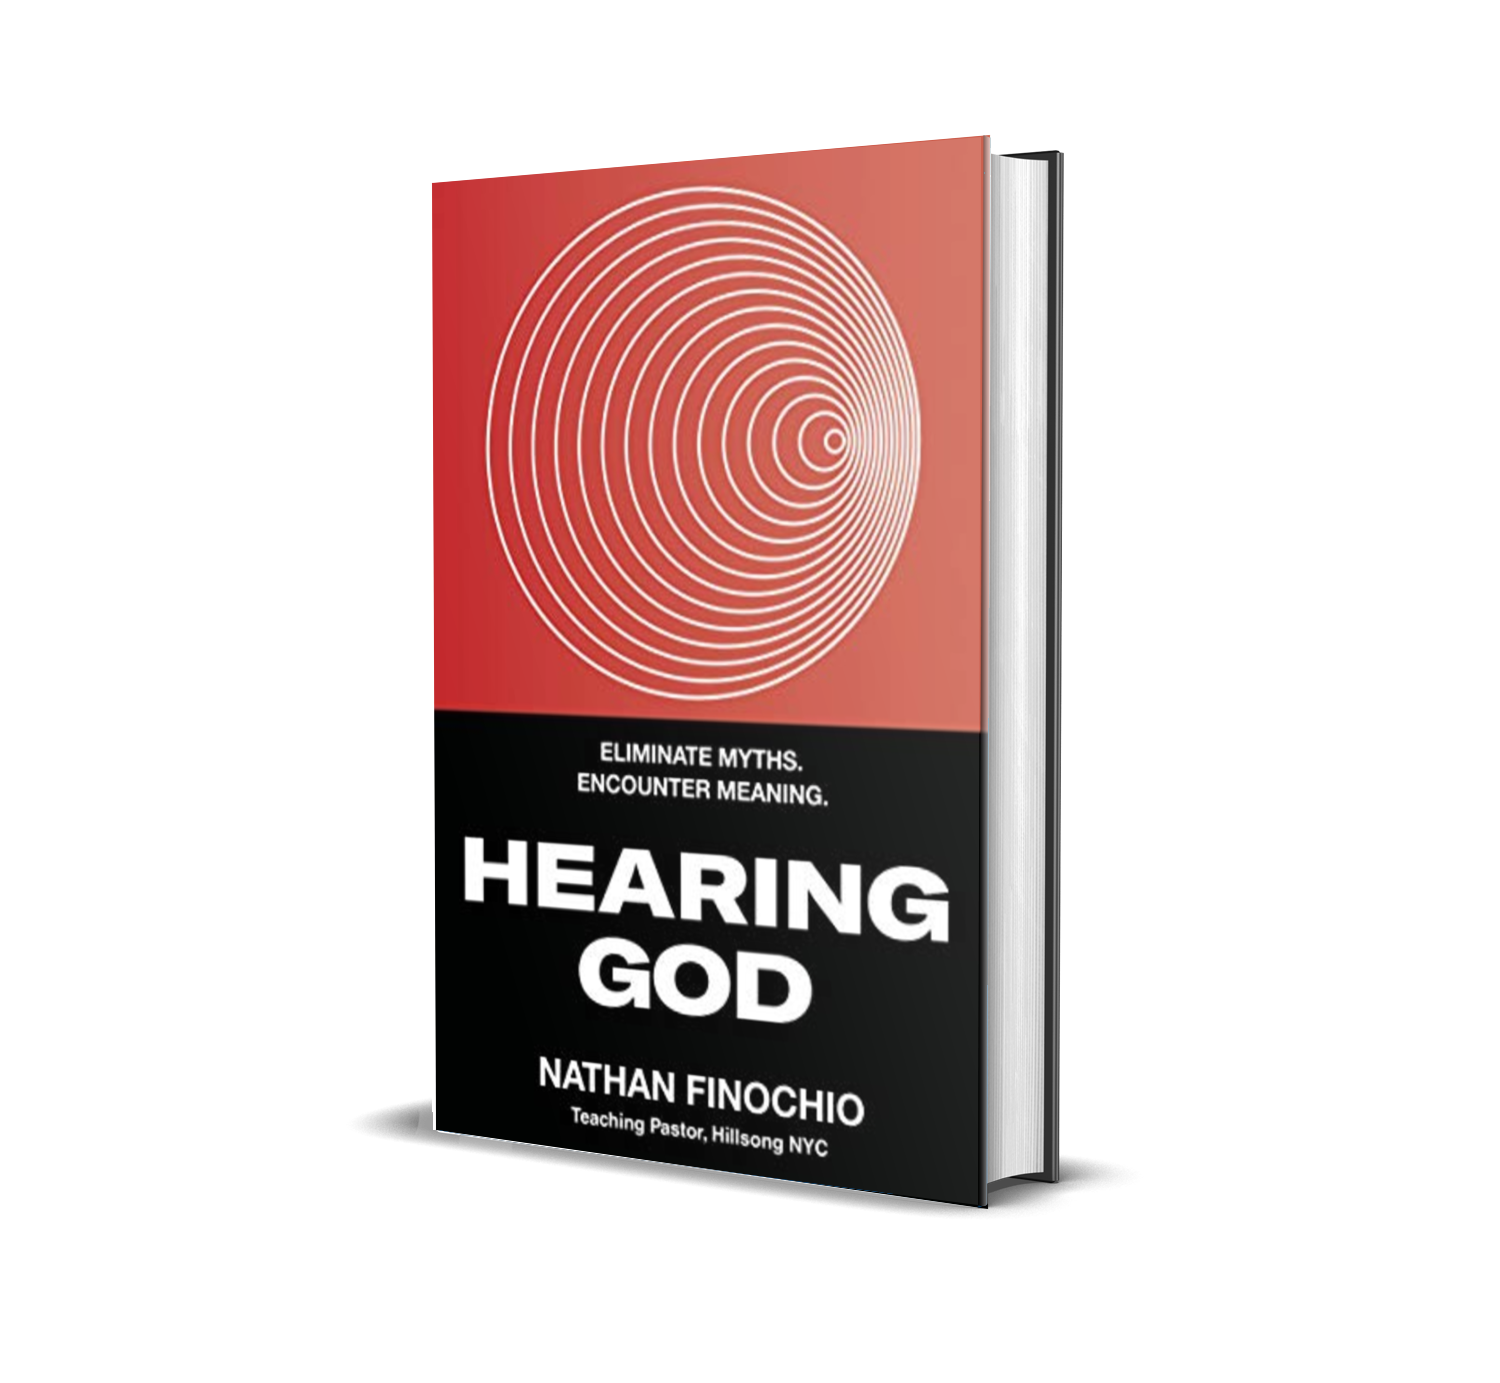 Hearing God: Eliminate Myths. Encounter Meaning. by Nathan Finochio